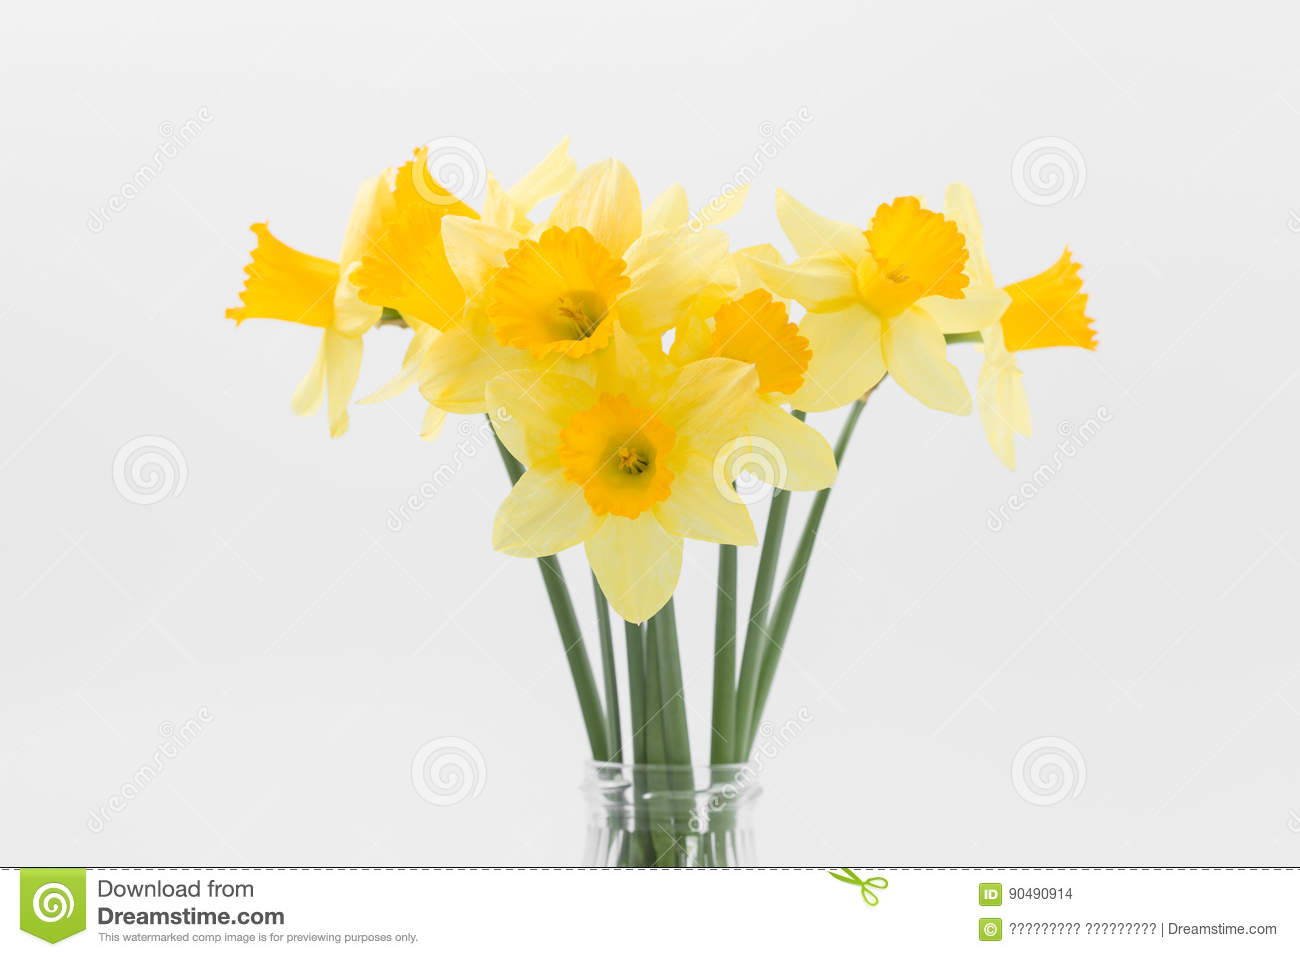 Beautiful spring yellow flowers daffodils on a white background beautiful spring yellow flowers daffodils on a white background mightylinksfo